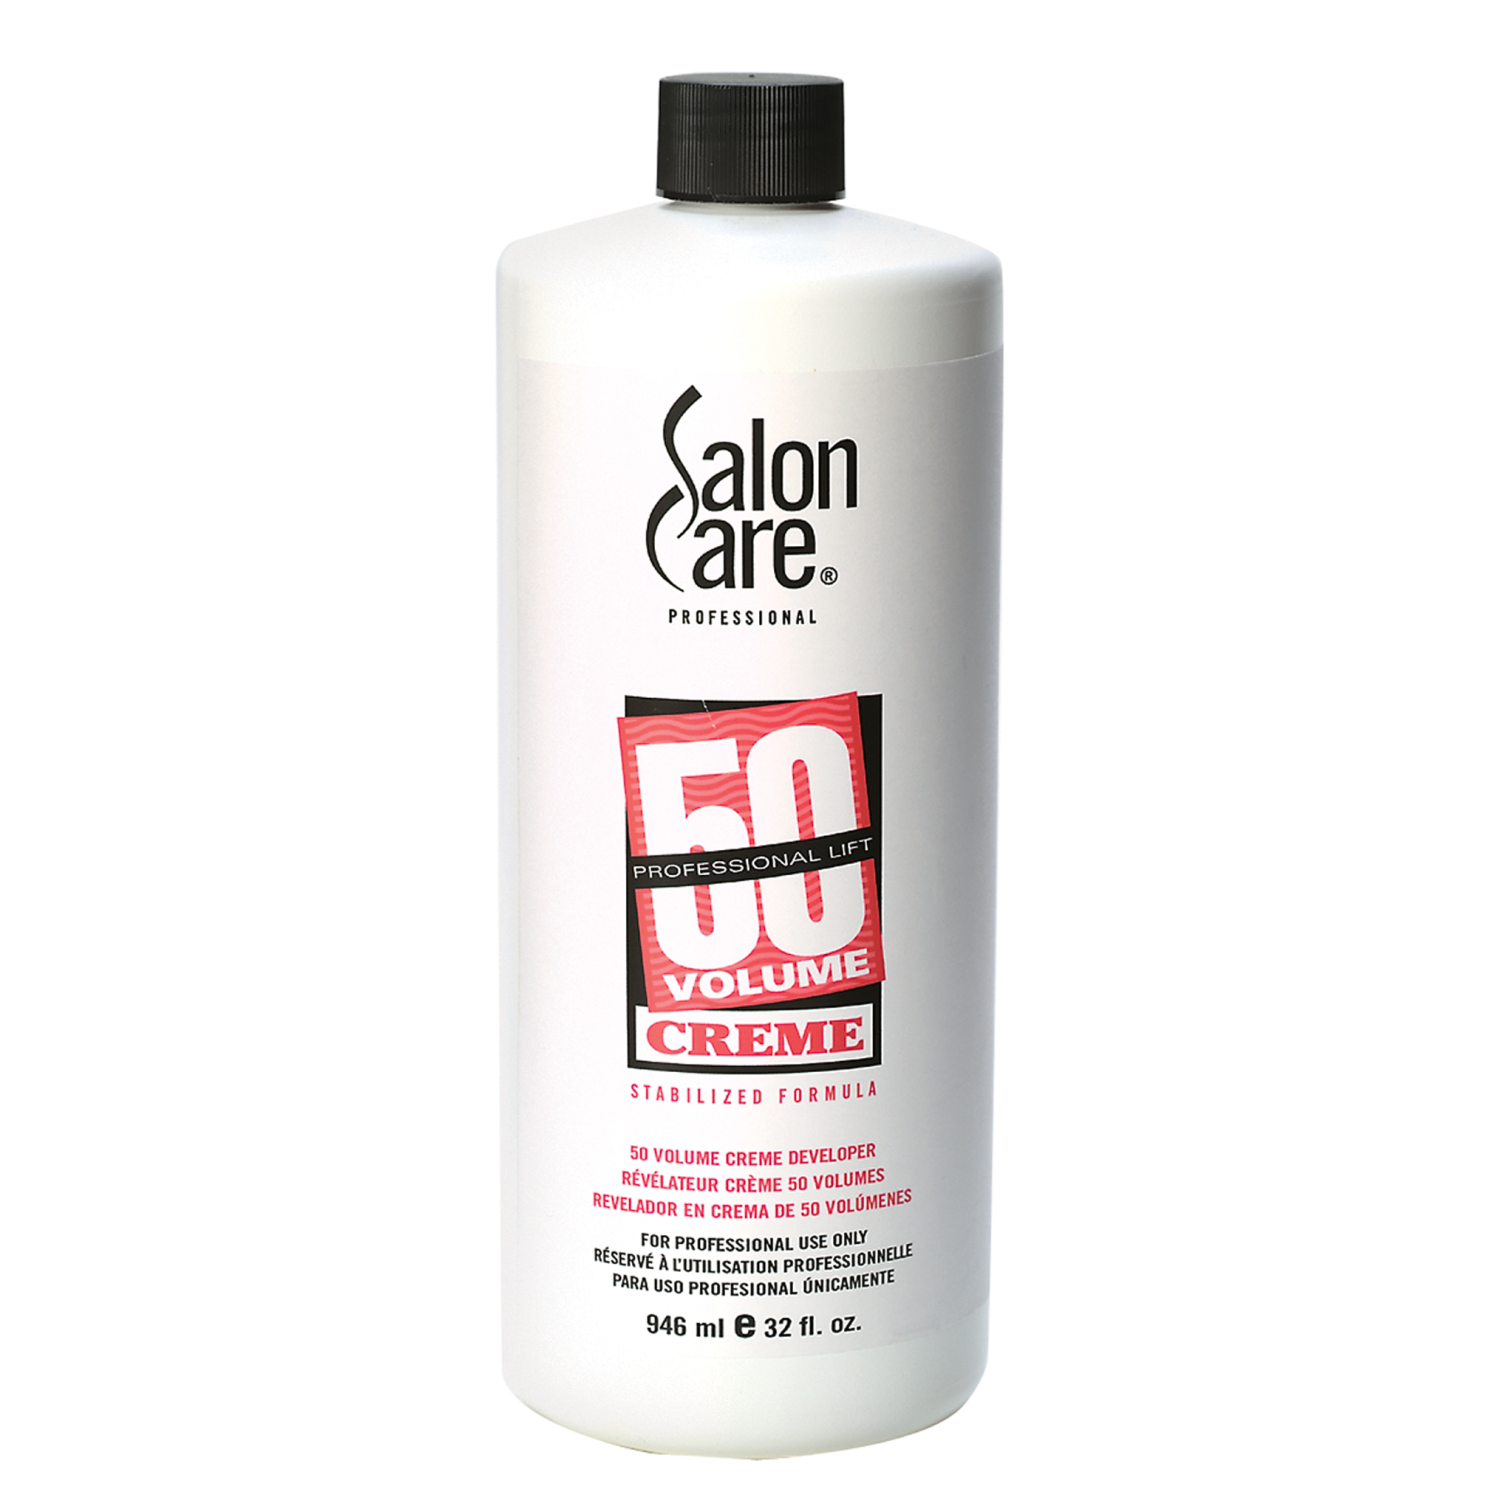 Salon Care 50 Volume Creme Developer